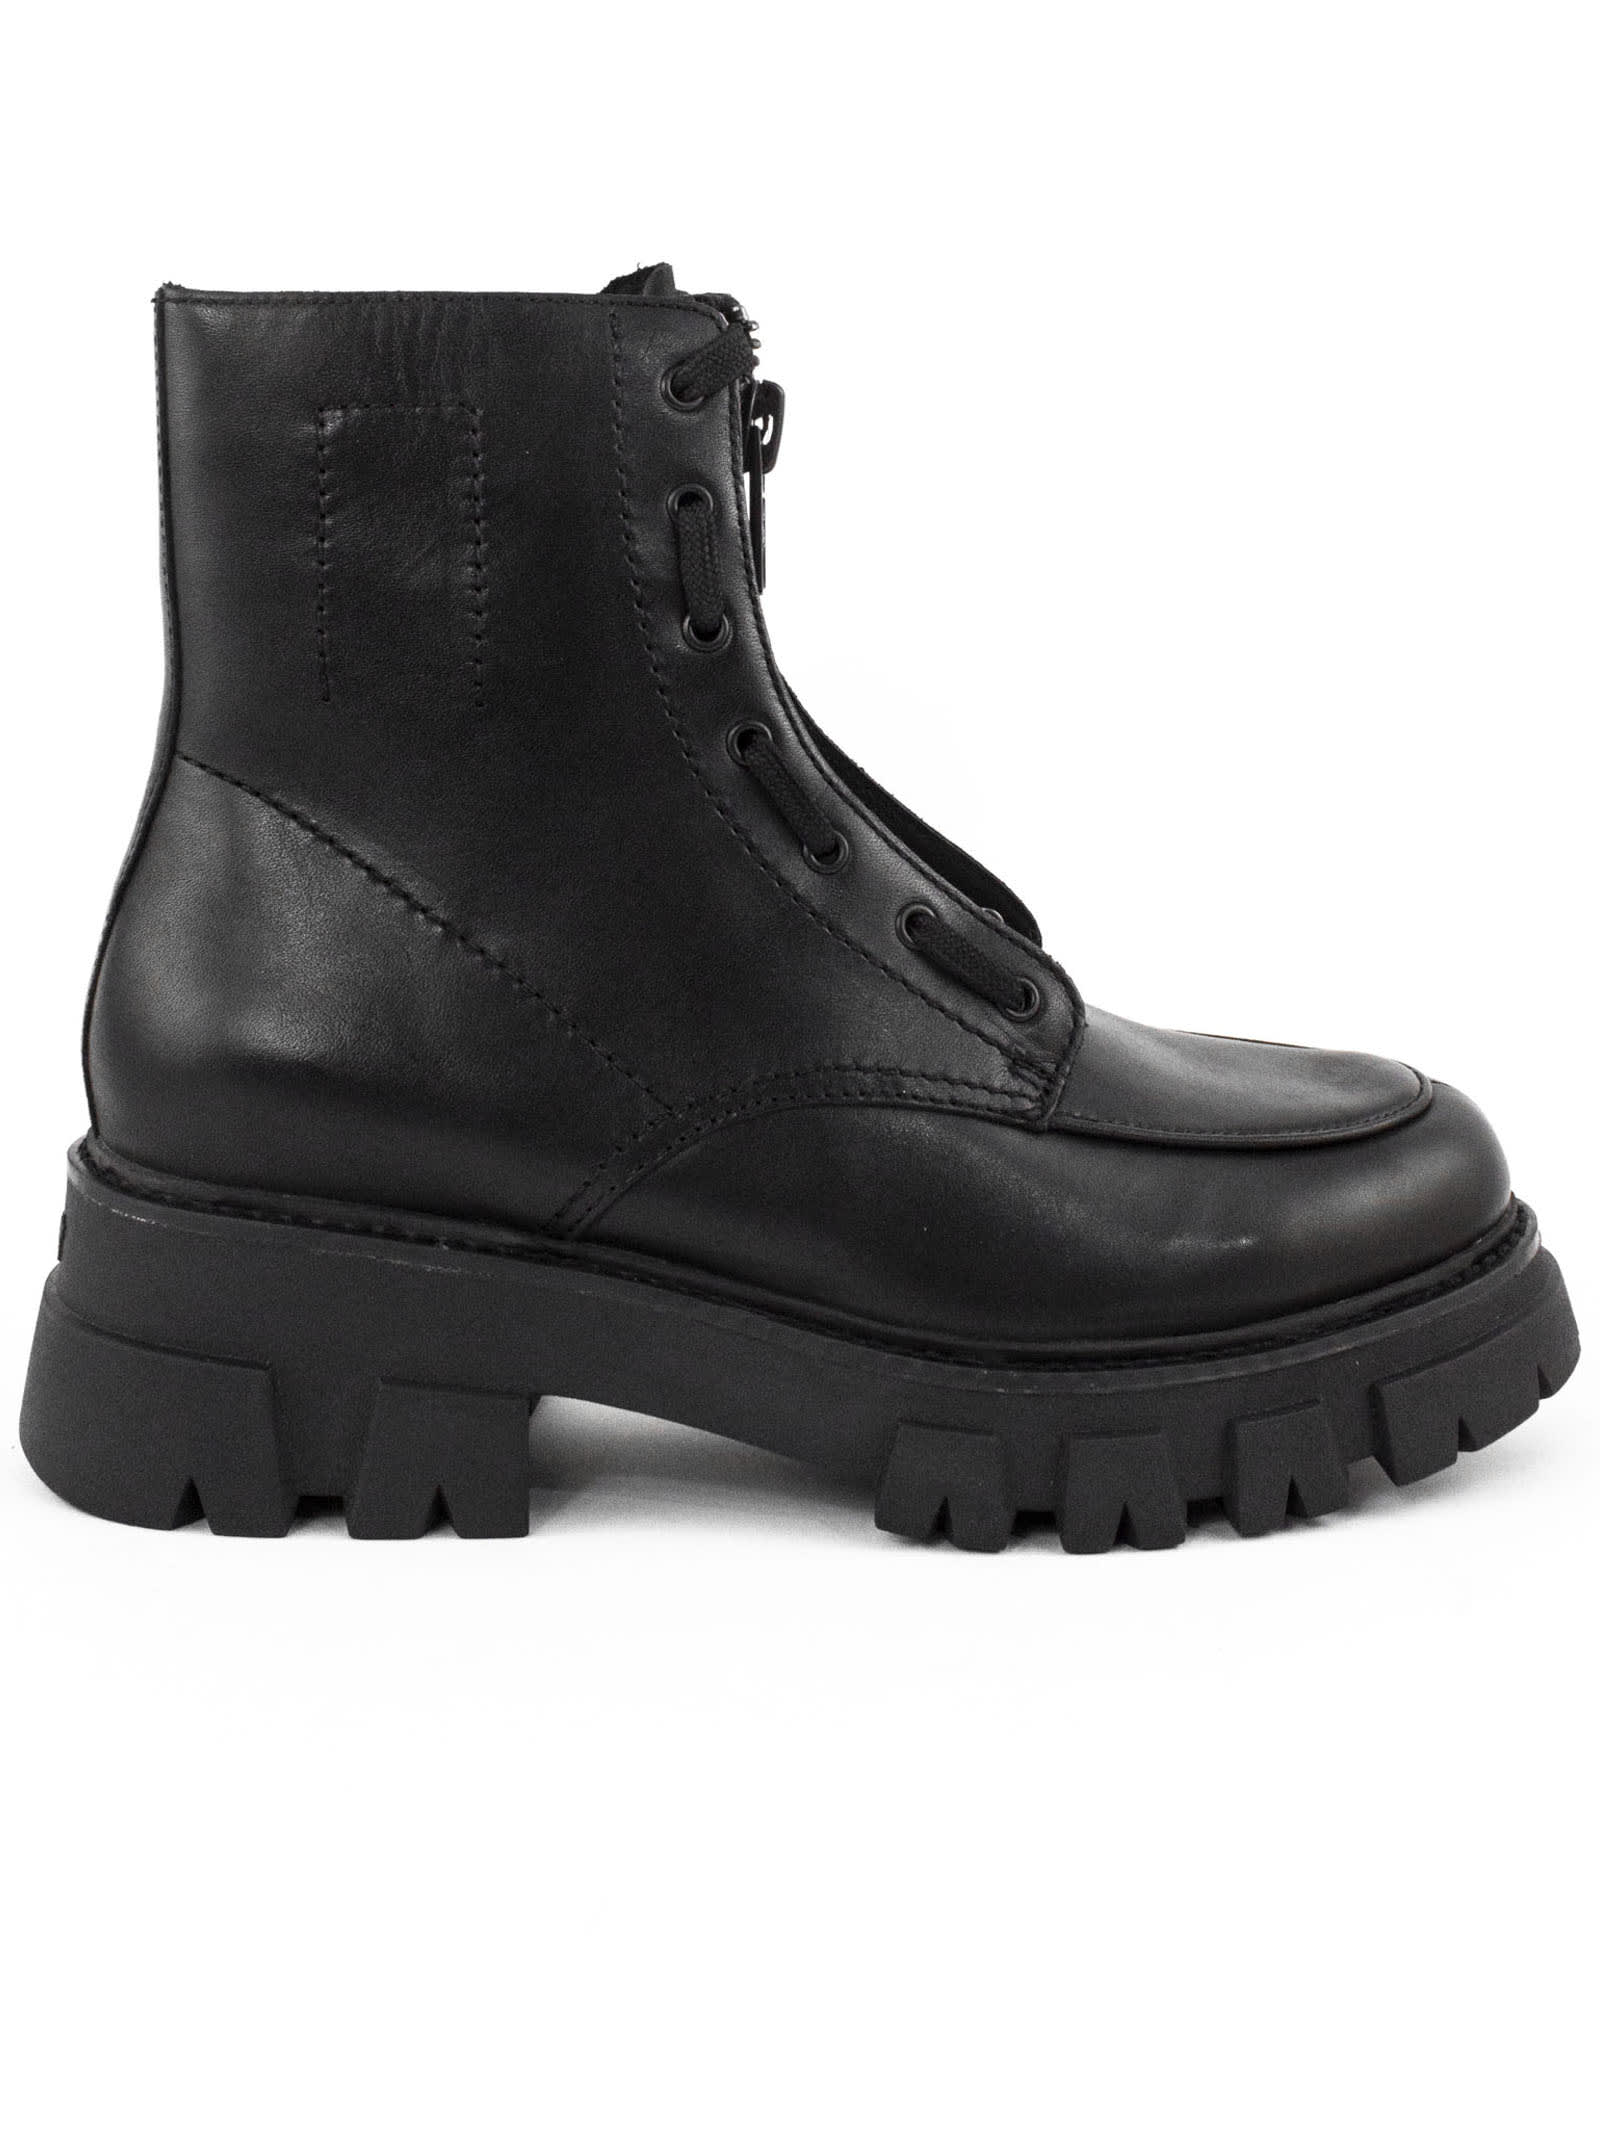 Ash Black Lynch Ankle Boots